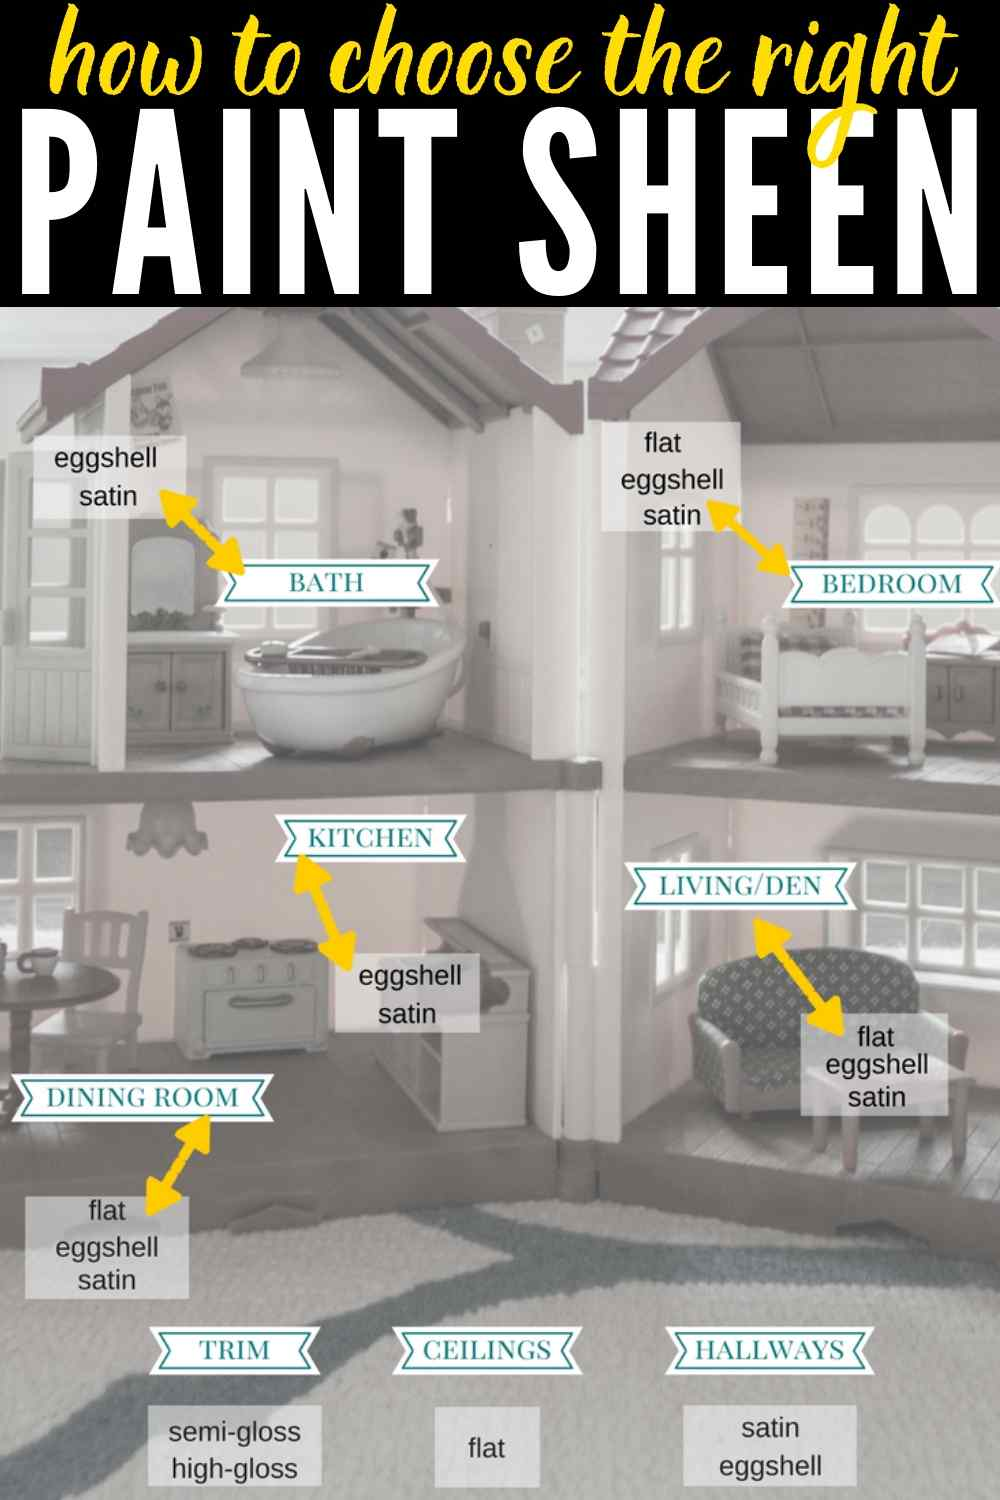 Pick the perfect paint sheen for every room in the house! Don't struggle anymore, check out this simple chart.